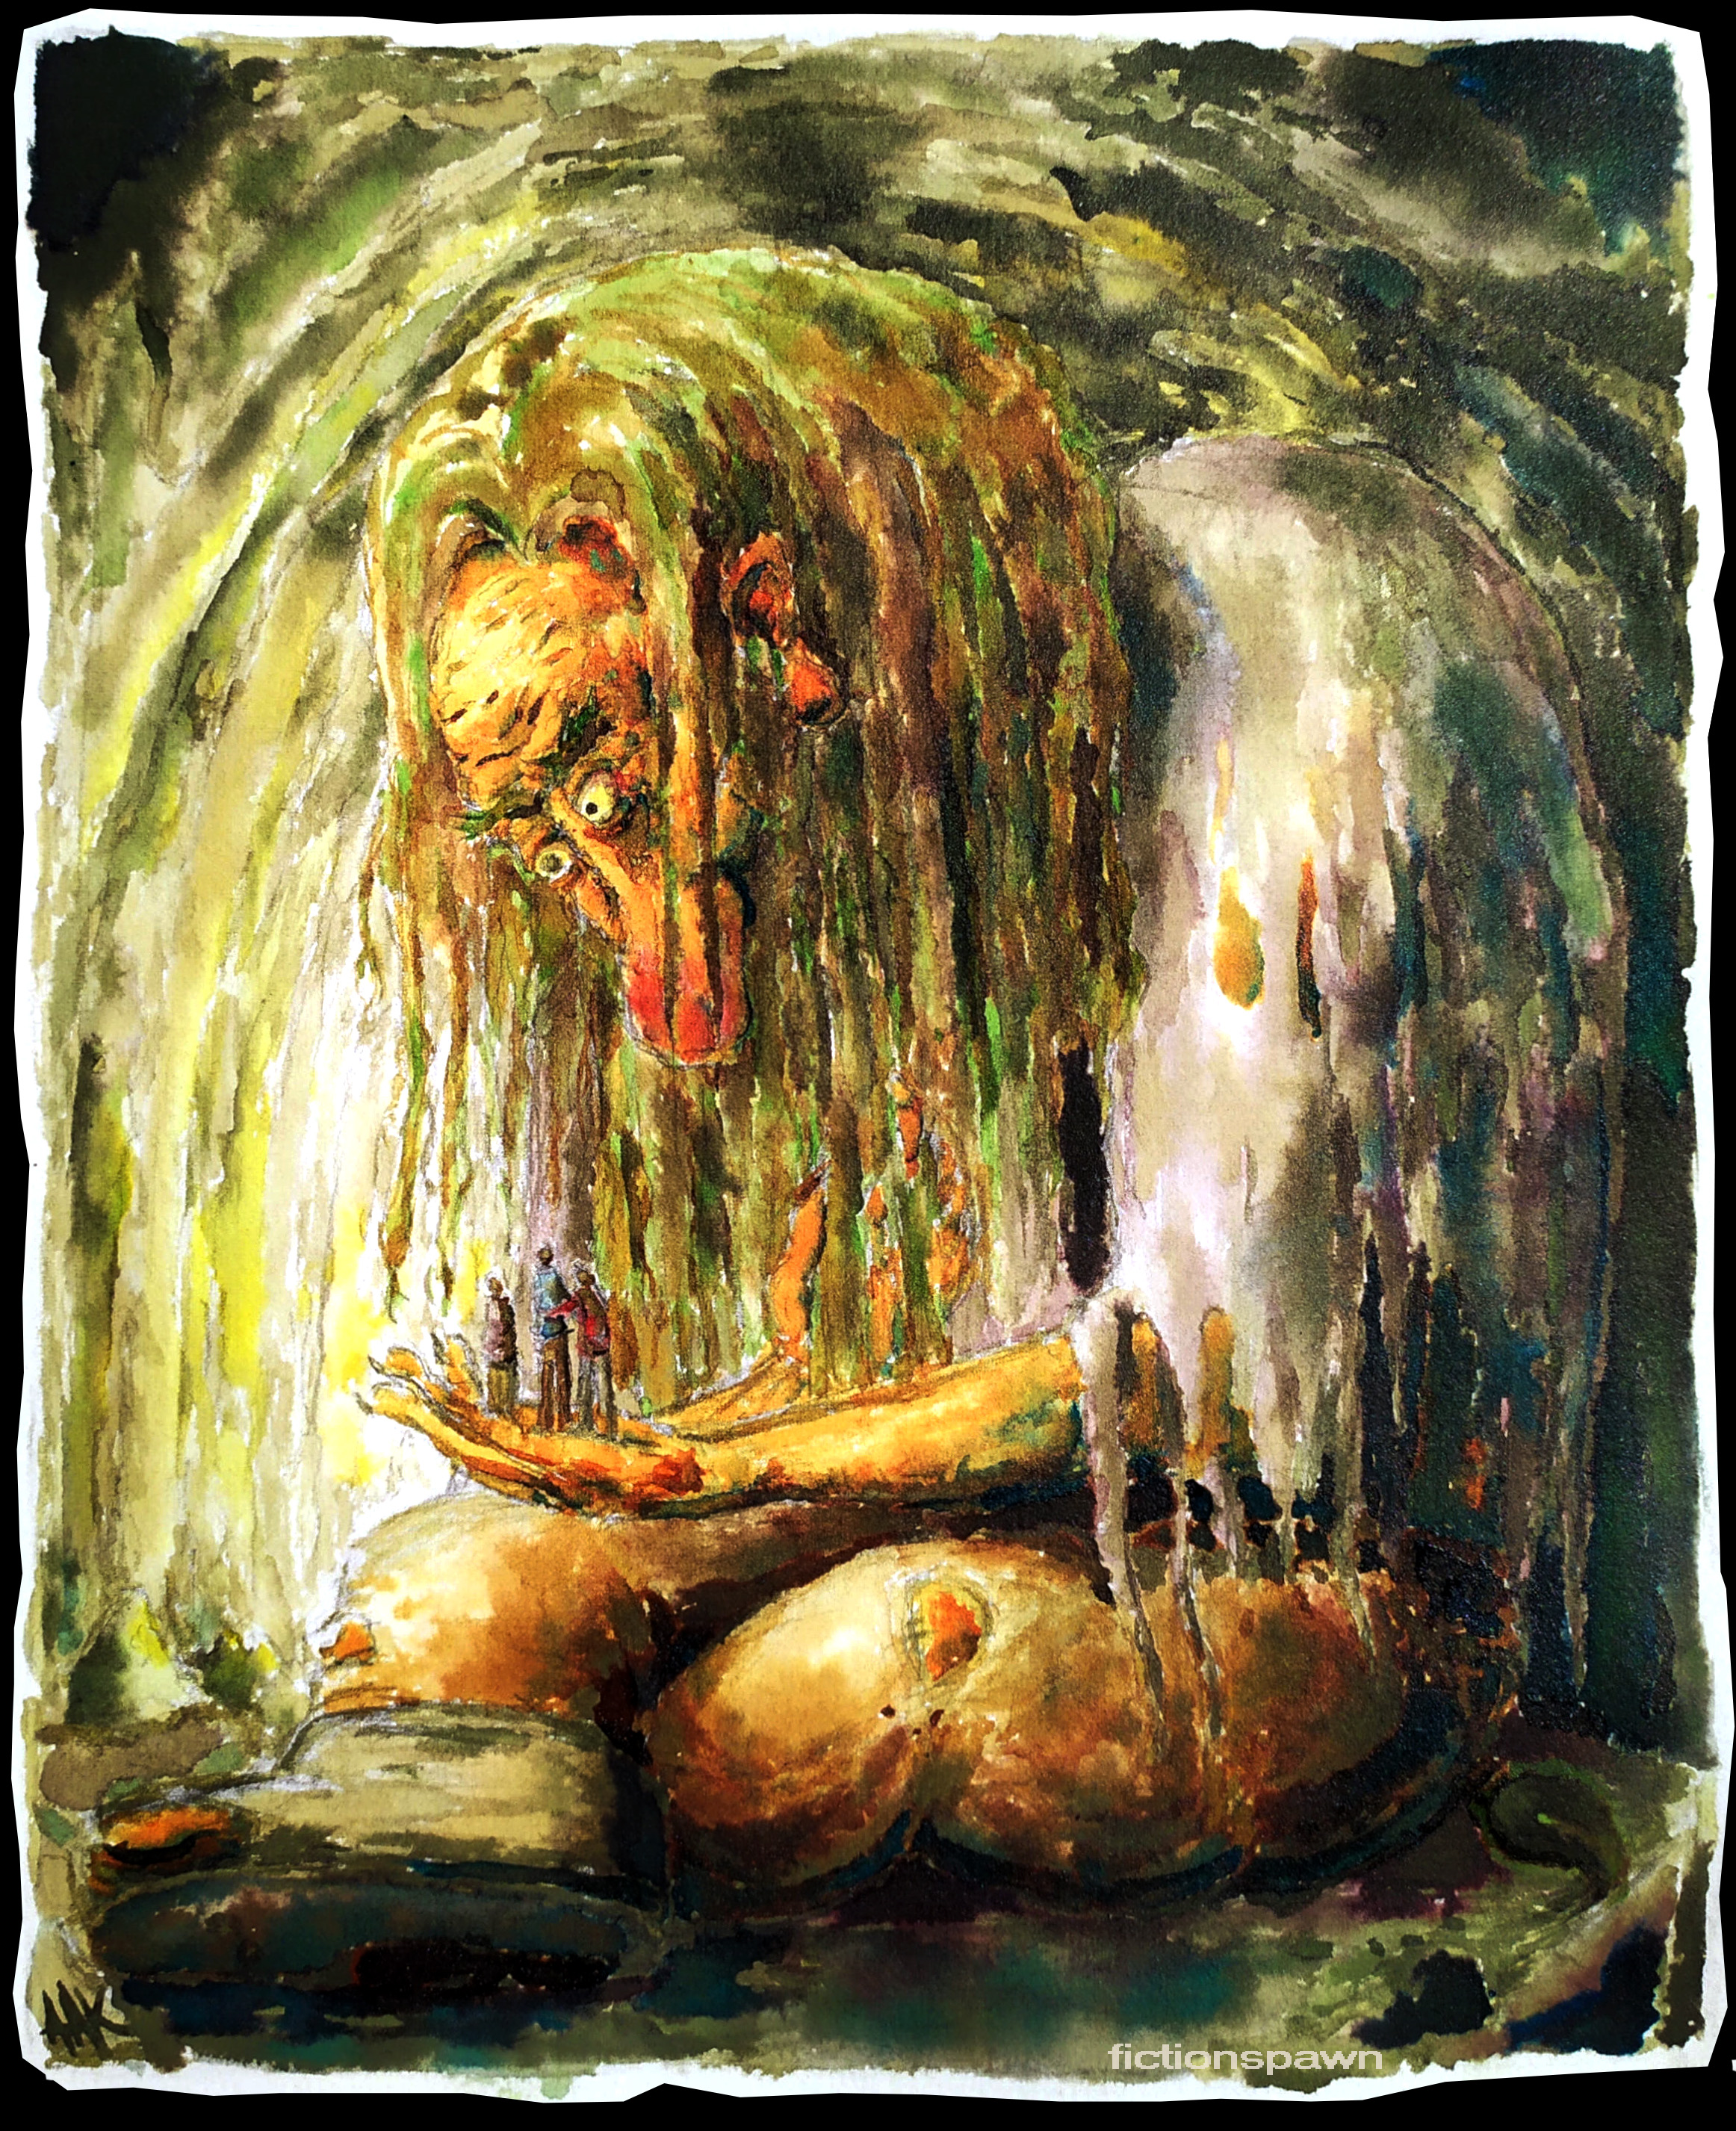 A troll holds three men in a cave. Aak fictionspawn